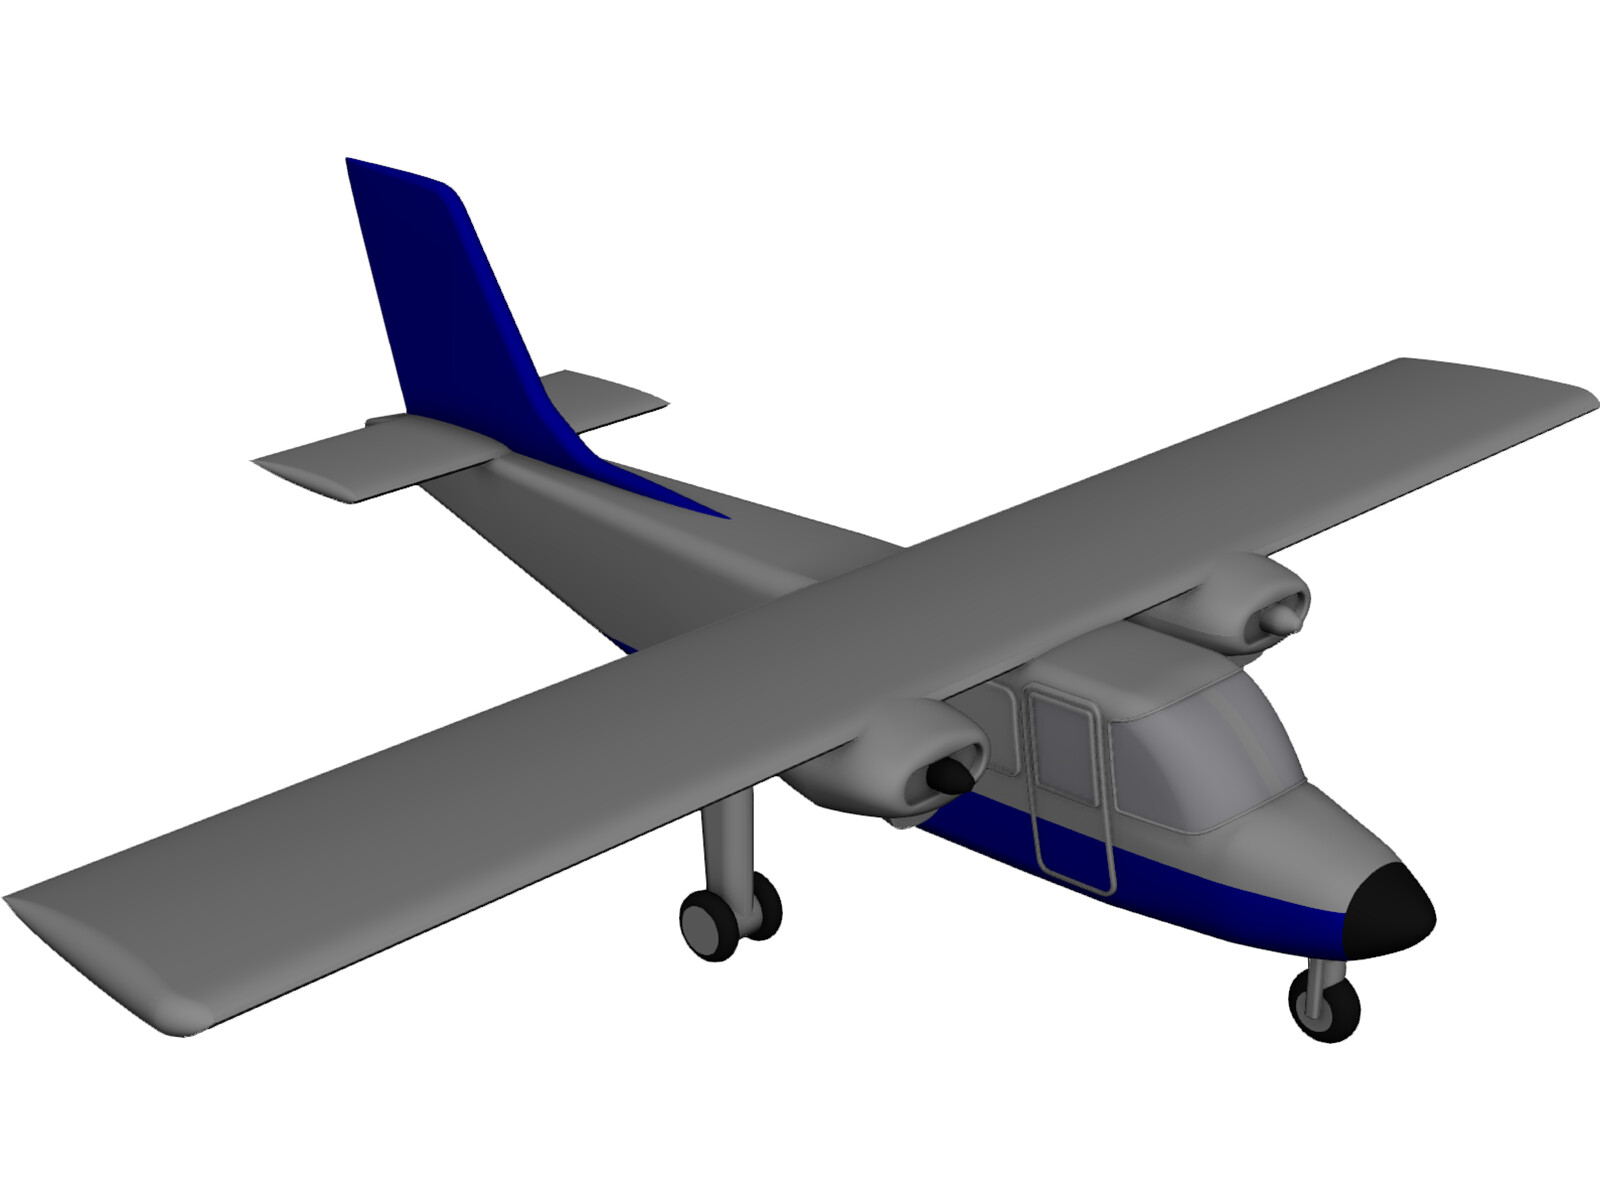 Britten Norman Islander/Defender 3D CAD Model